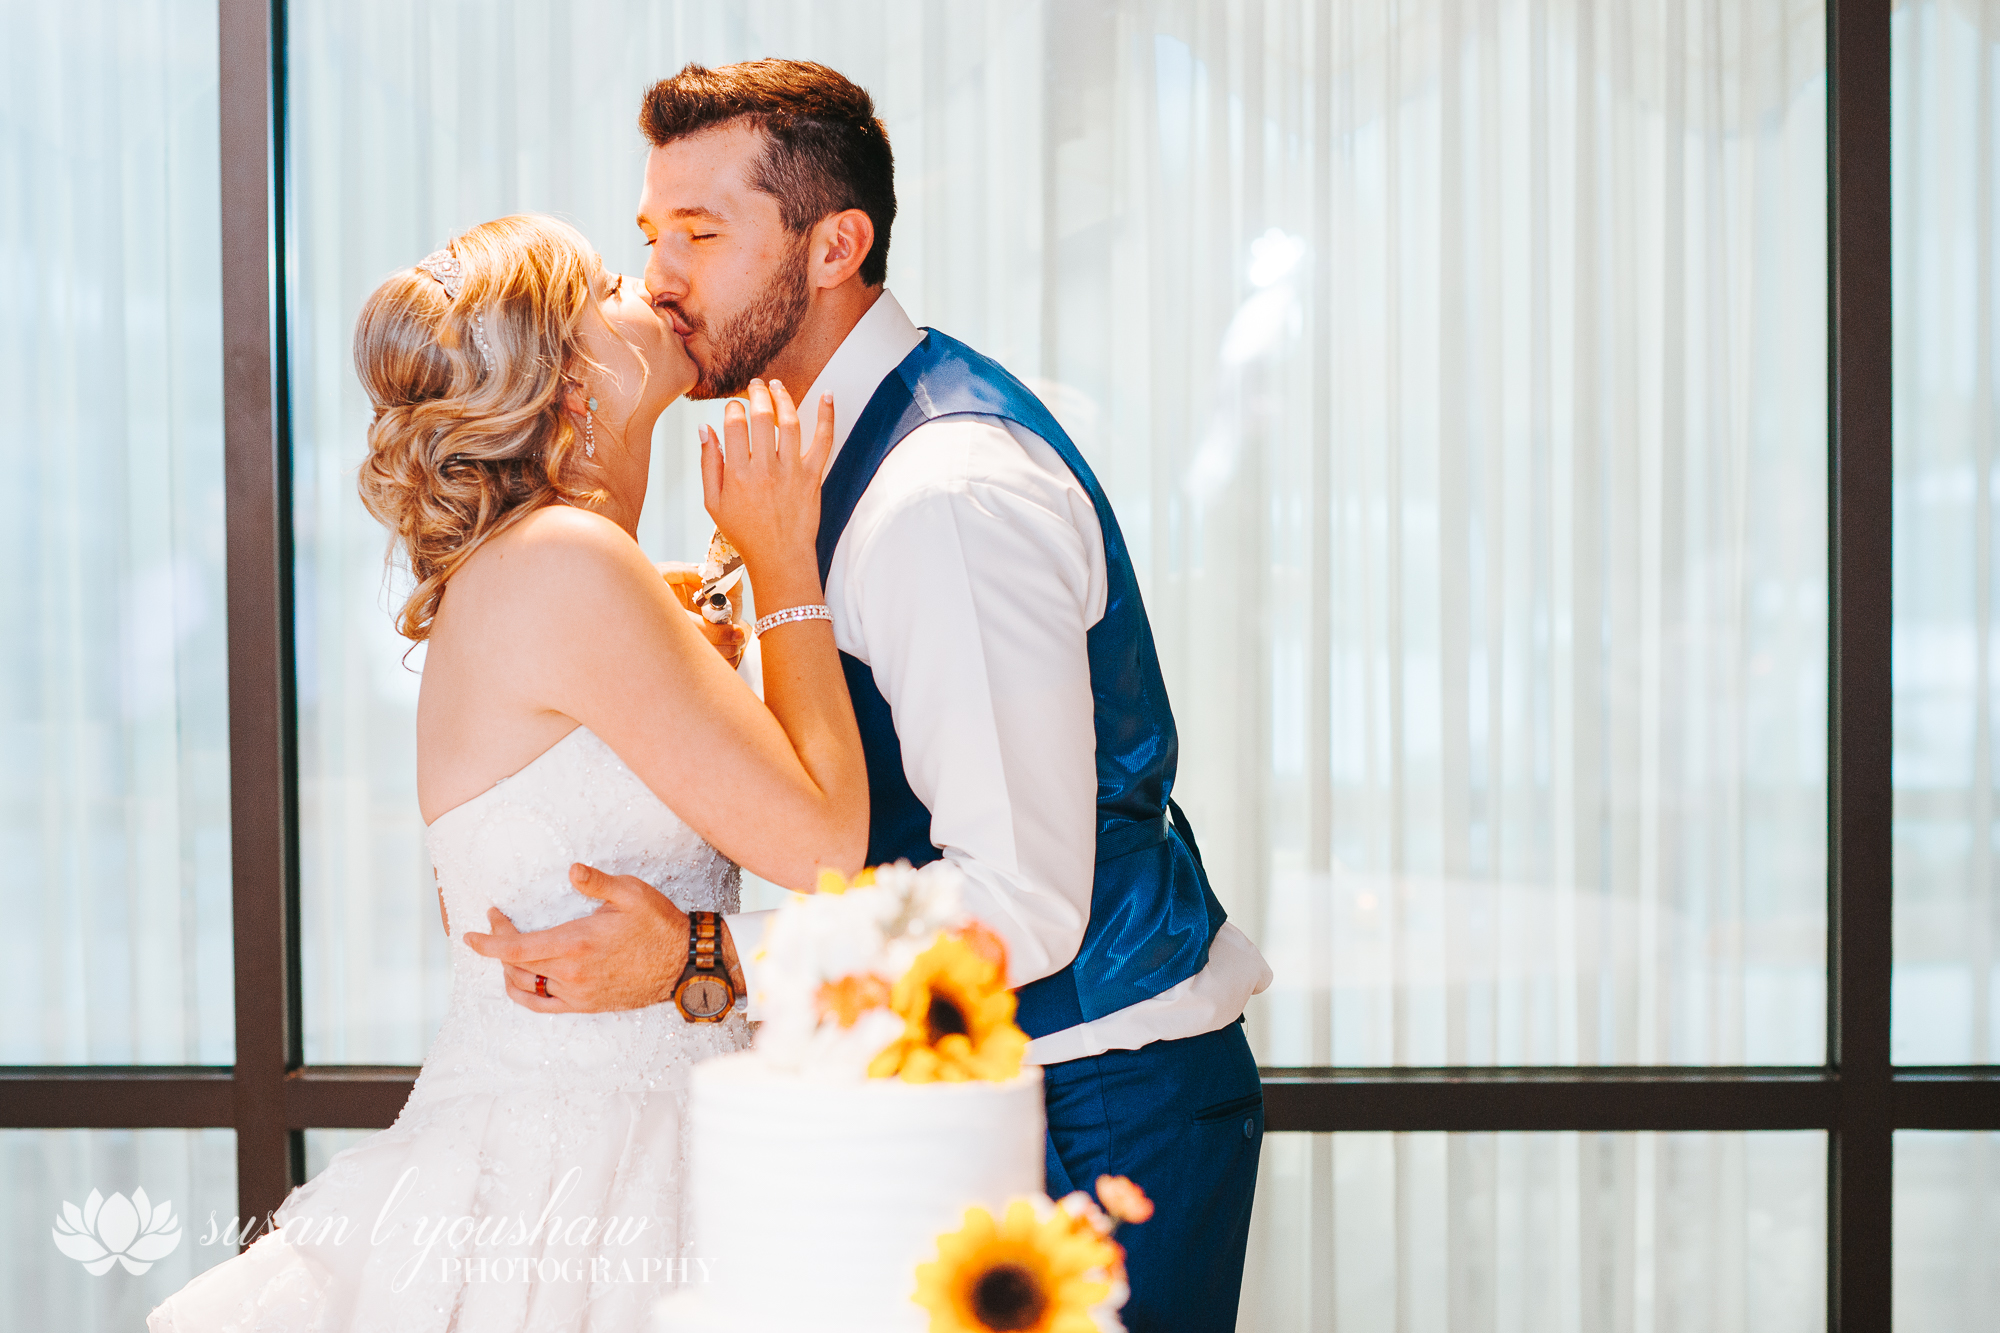 BLOG Kylie and corey Bennet 10-13-2018 SLY Photography LLC-157.jpg